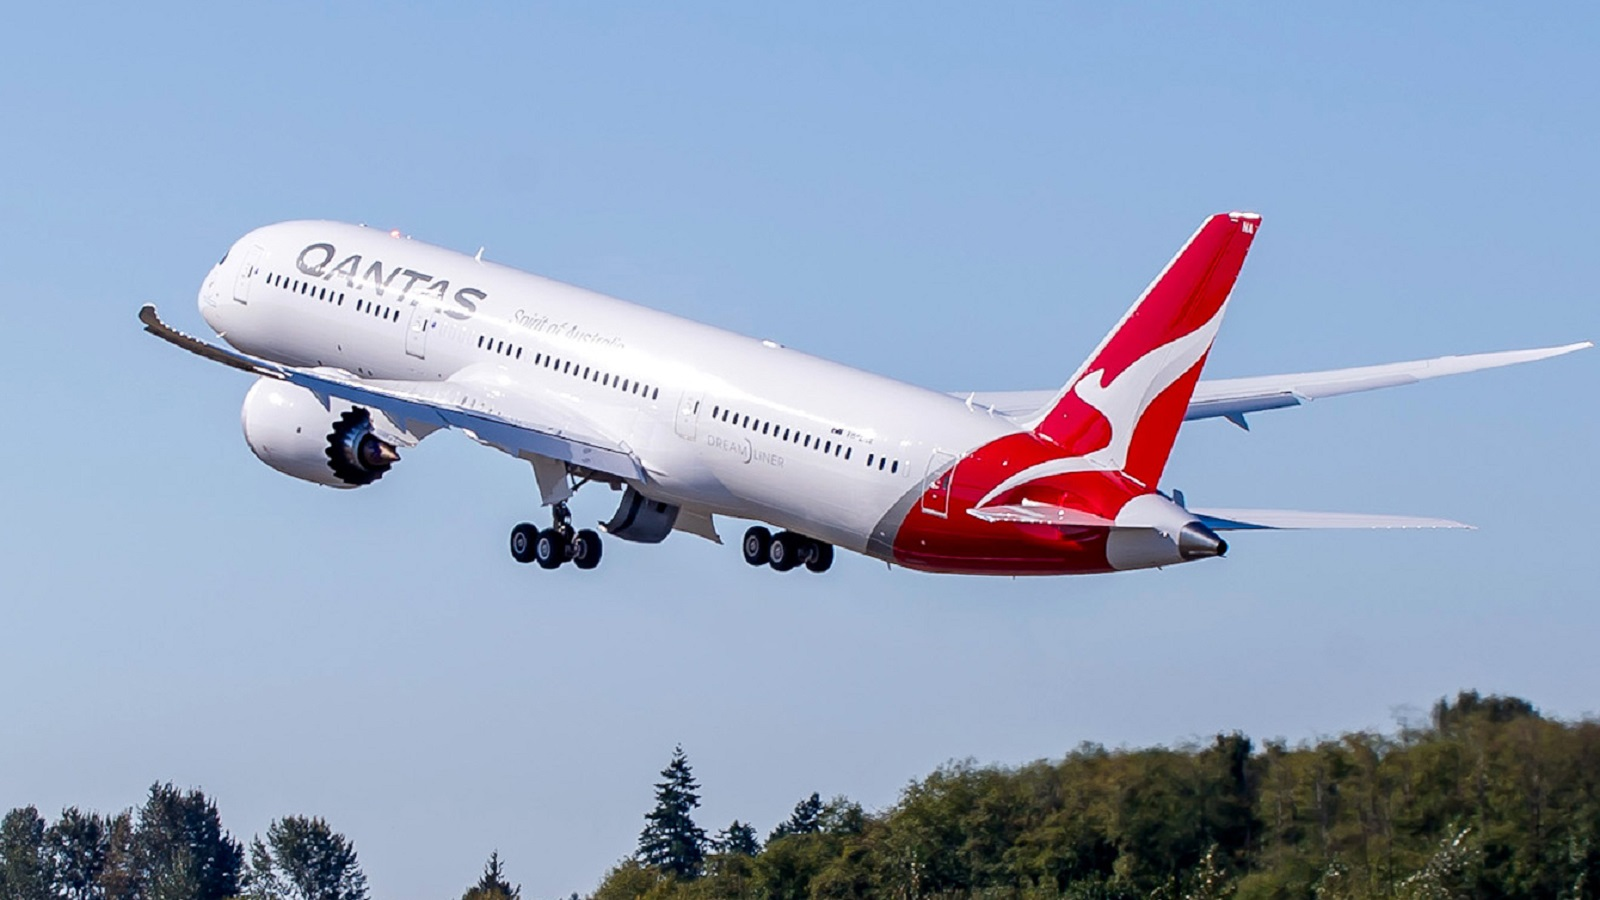 Qantas takes home the trophy as 2020's safest airline